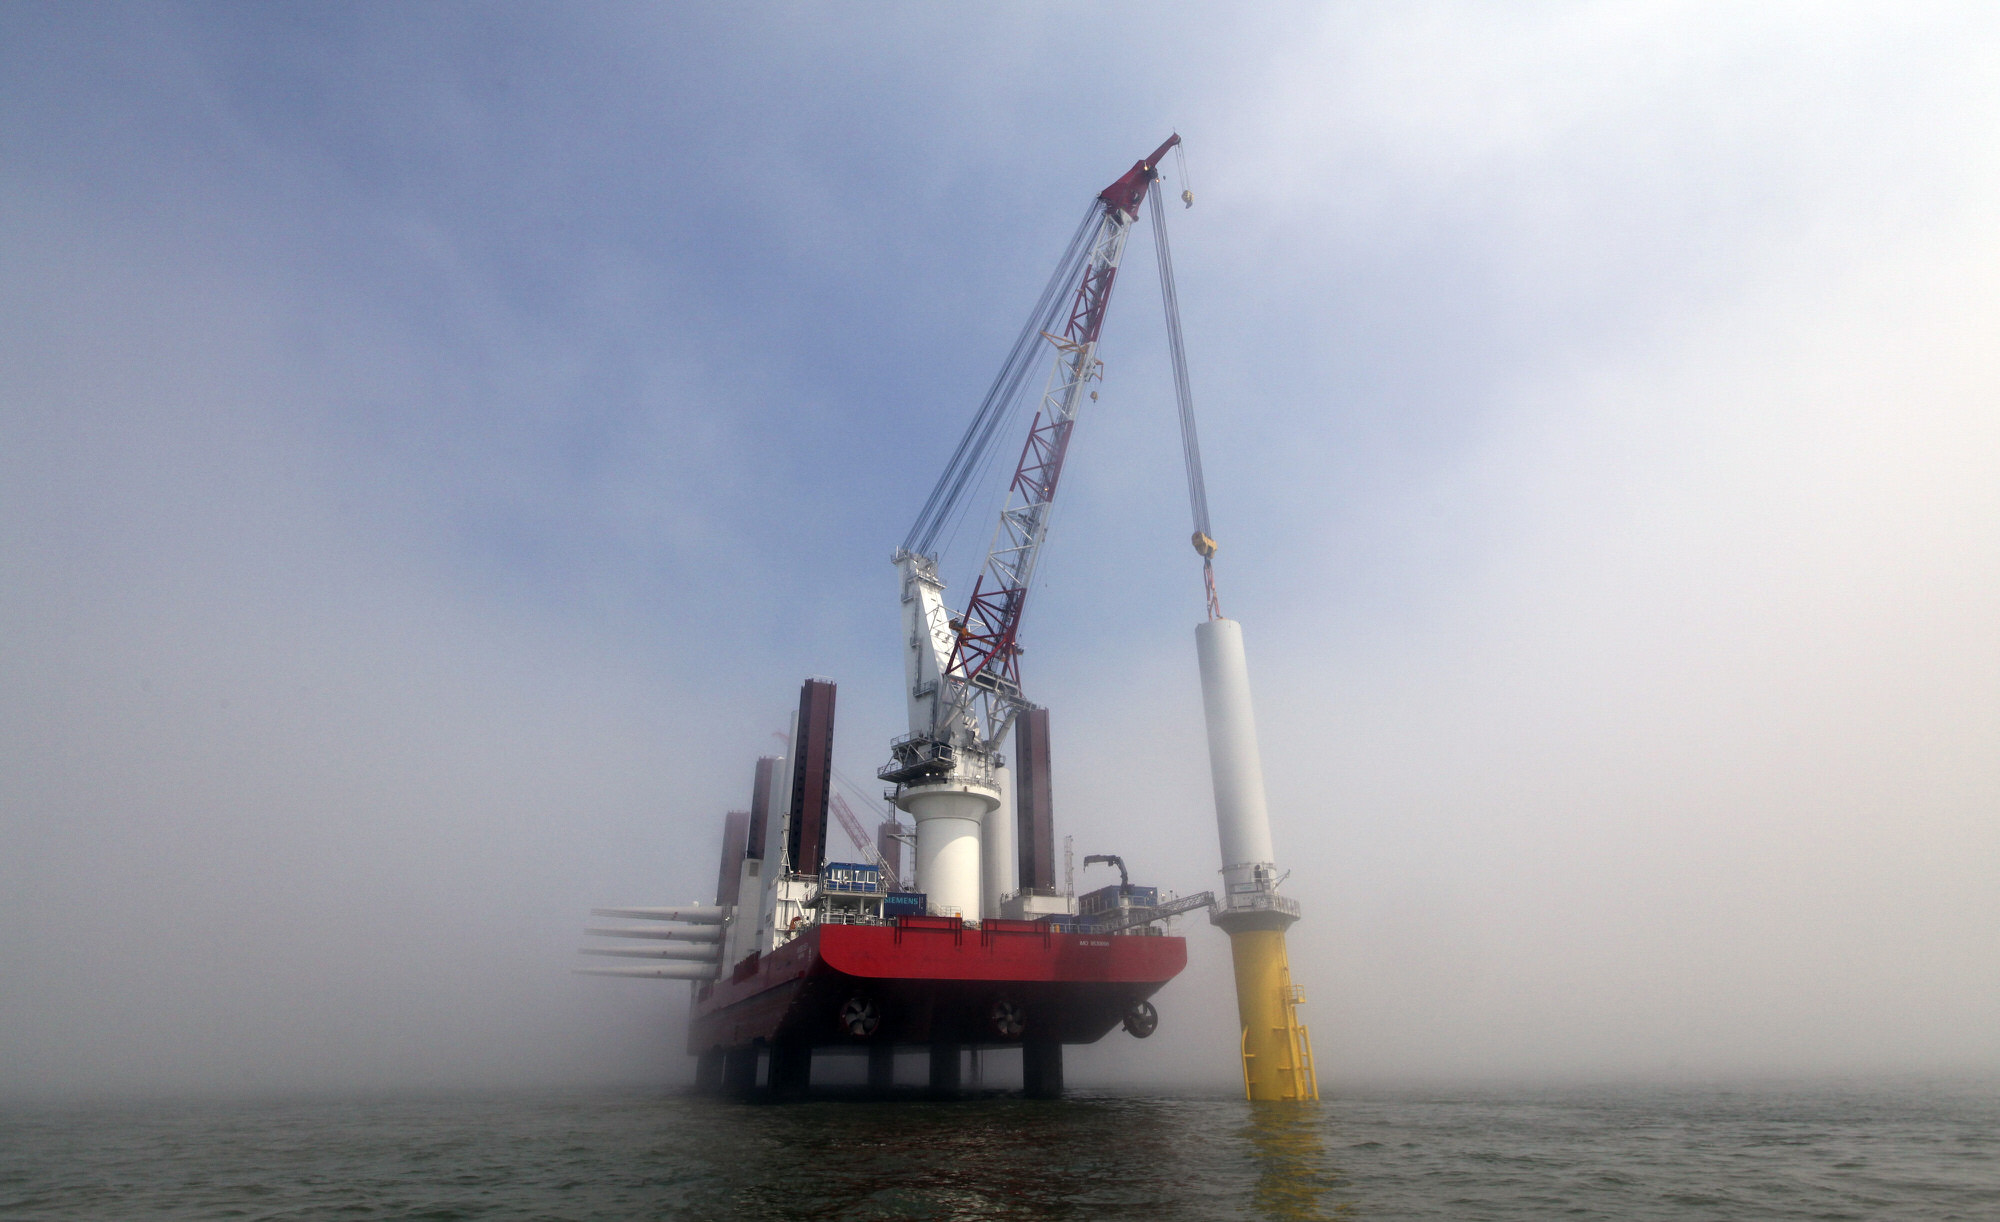 The MPI Discovery, a jack-up vessel operated by MPI Offshore, lowers a tower section at the London Array project, the worldÕs largest consented wind farm, a partnership between Dong Energy A/S, E.ON AG and Abu Dhabi-based Masdar in the Thames Estuary, U.K., on Thursday, May 24, 2012. Britain, which has more than 1,500 megawatts of offshore wind, plans to increase capacity to 18,000 megawatts by 2020 in a bid to meet rising energy demand without adding emissions. Photographer: Chris Ratcliffe/Bloomberg